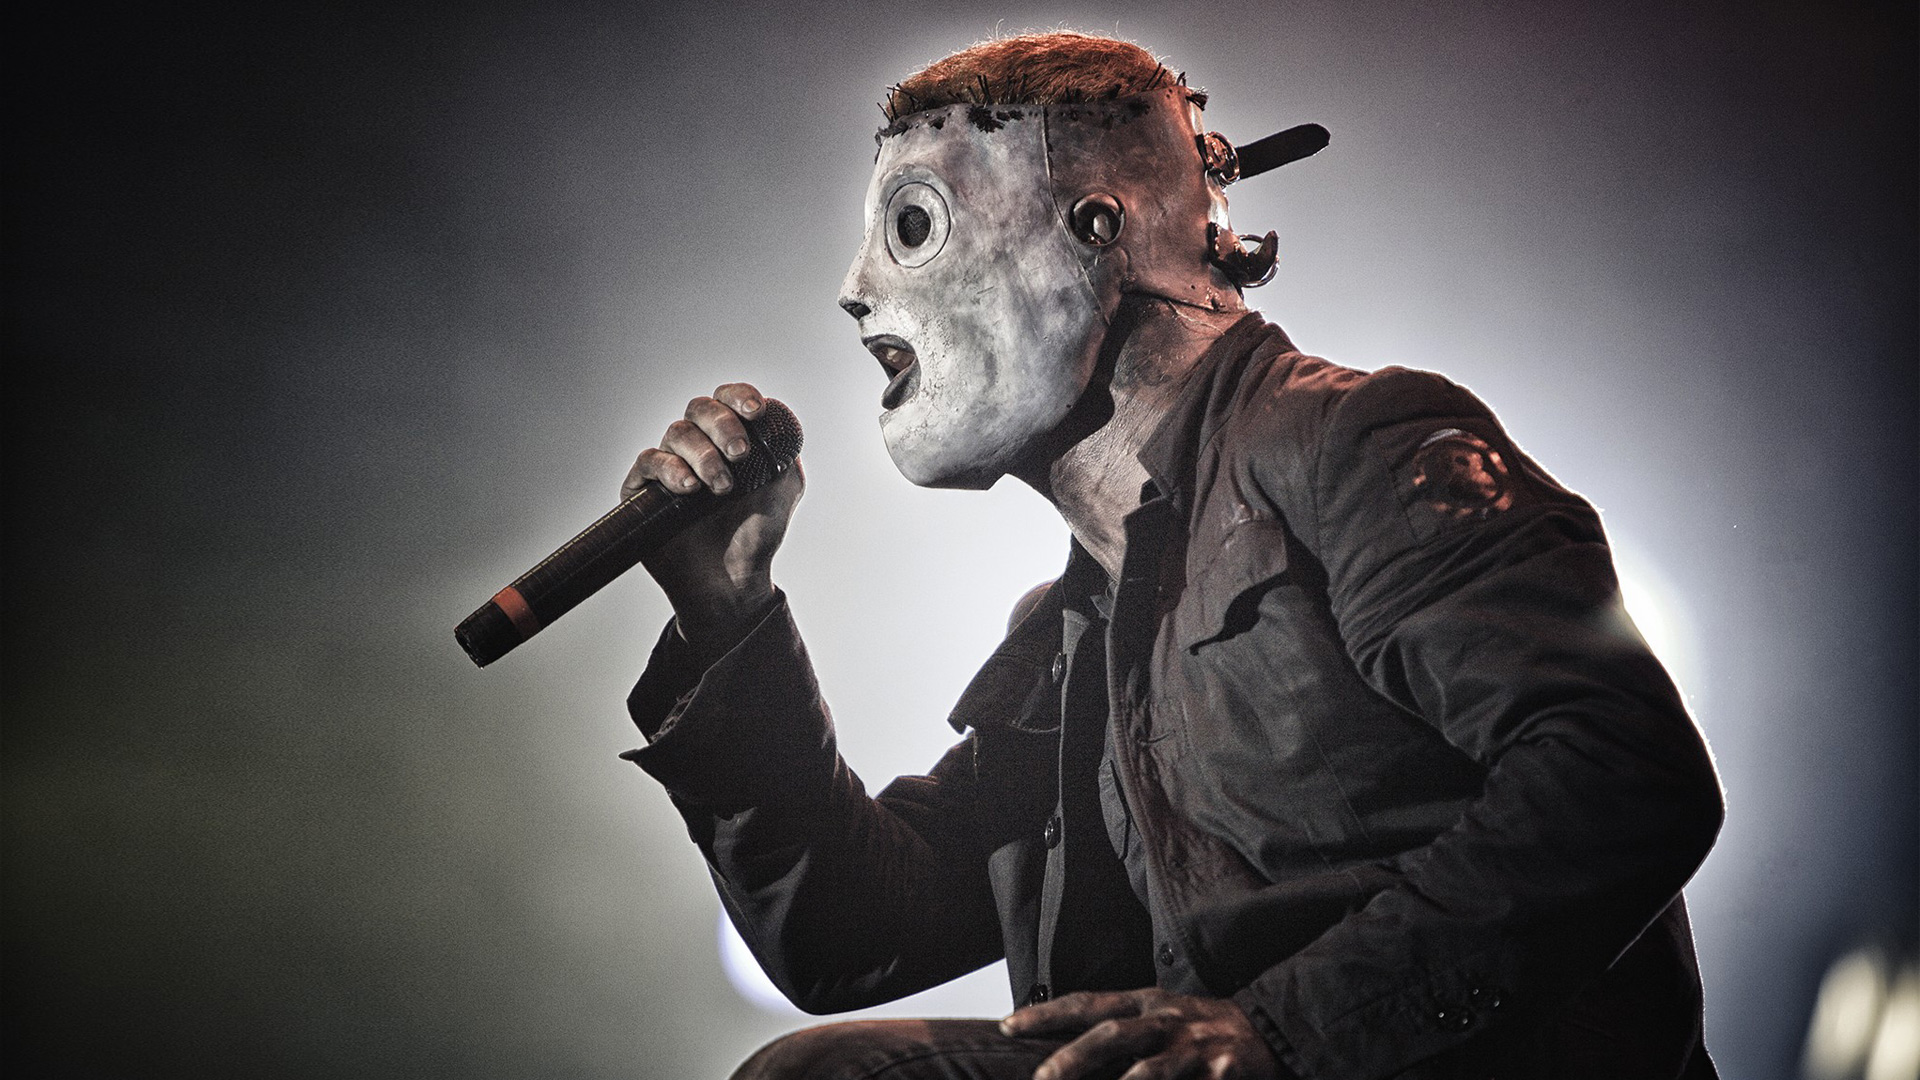 Slipknot Corey Taylor   Music fitness and motivational 1920x1080